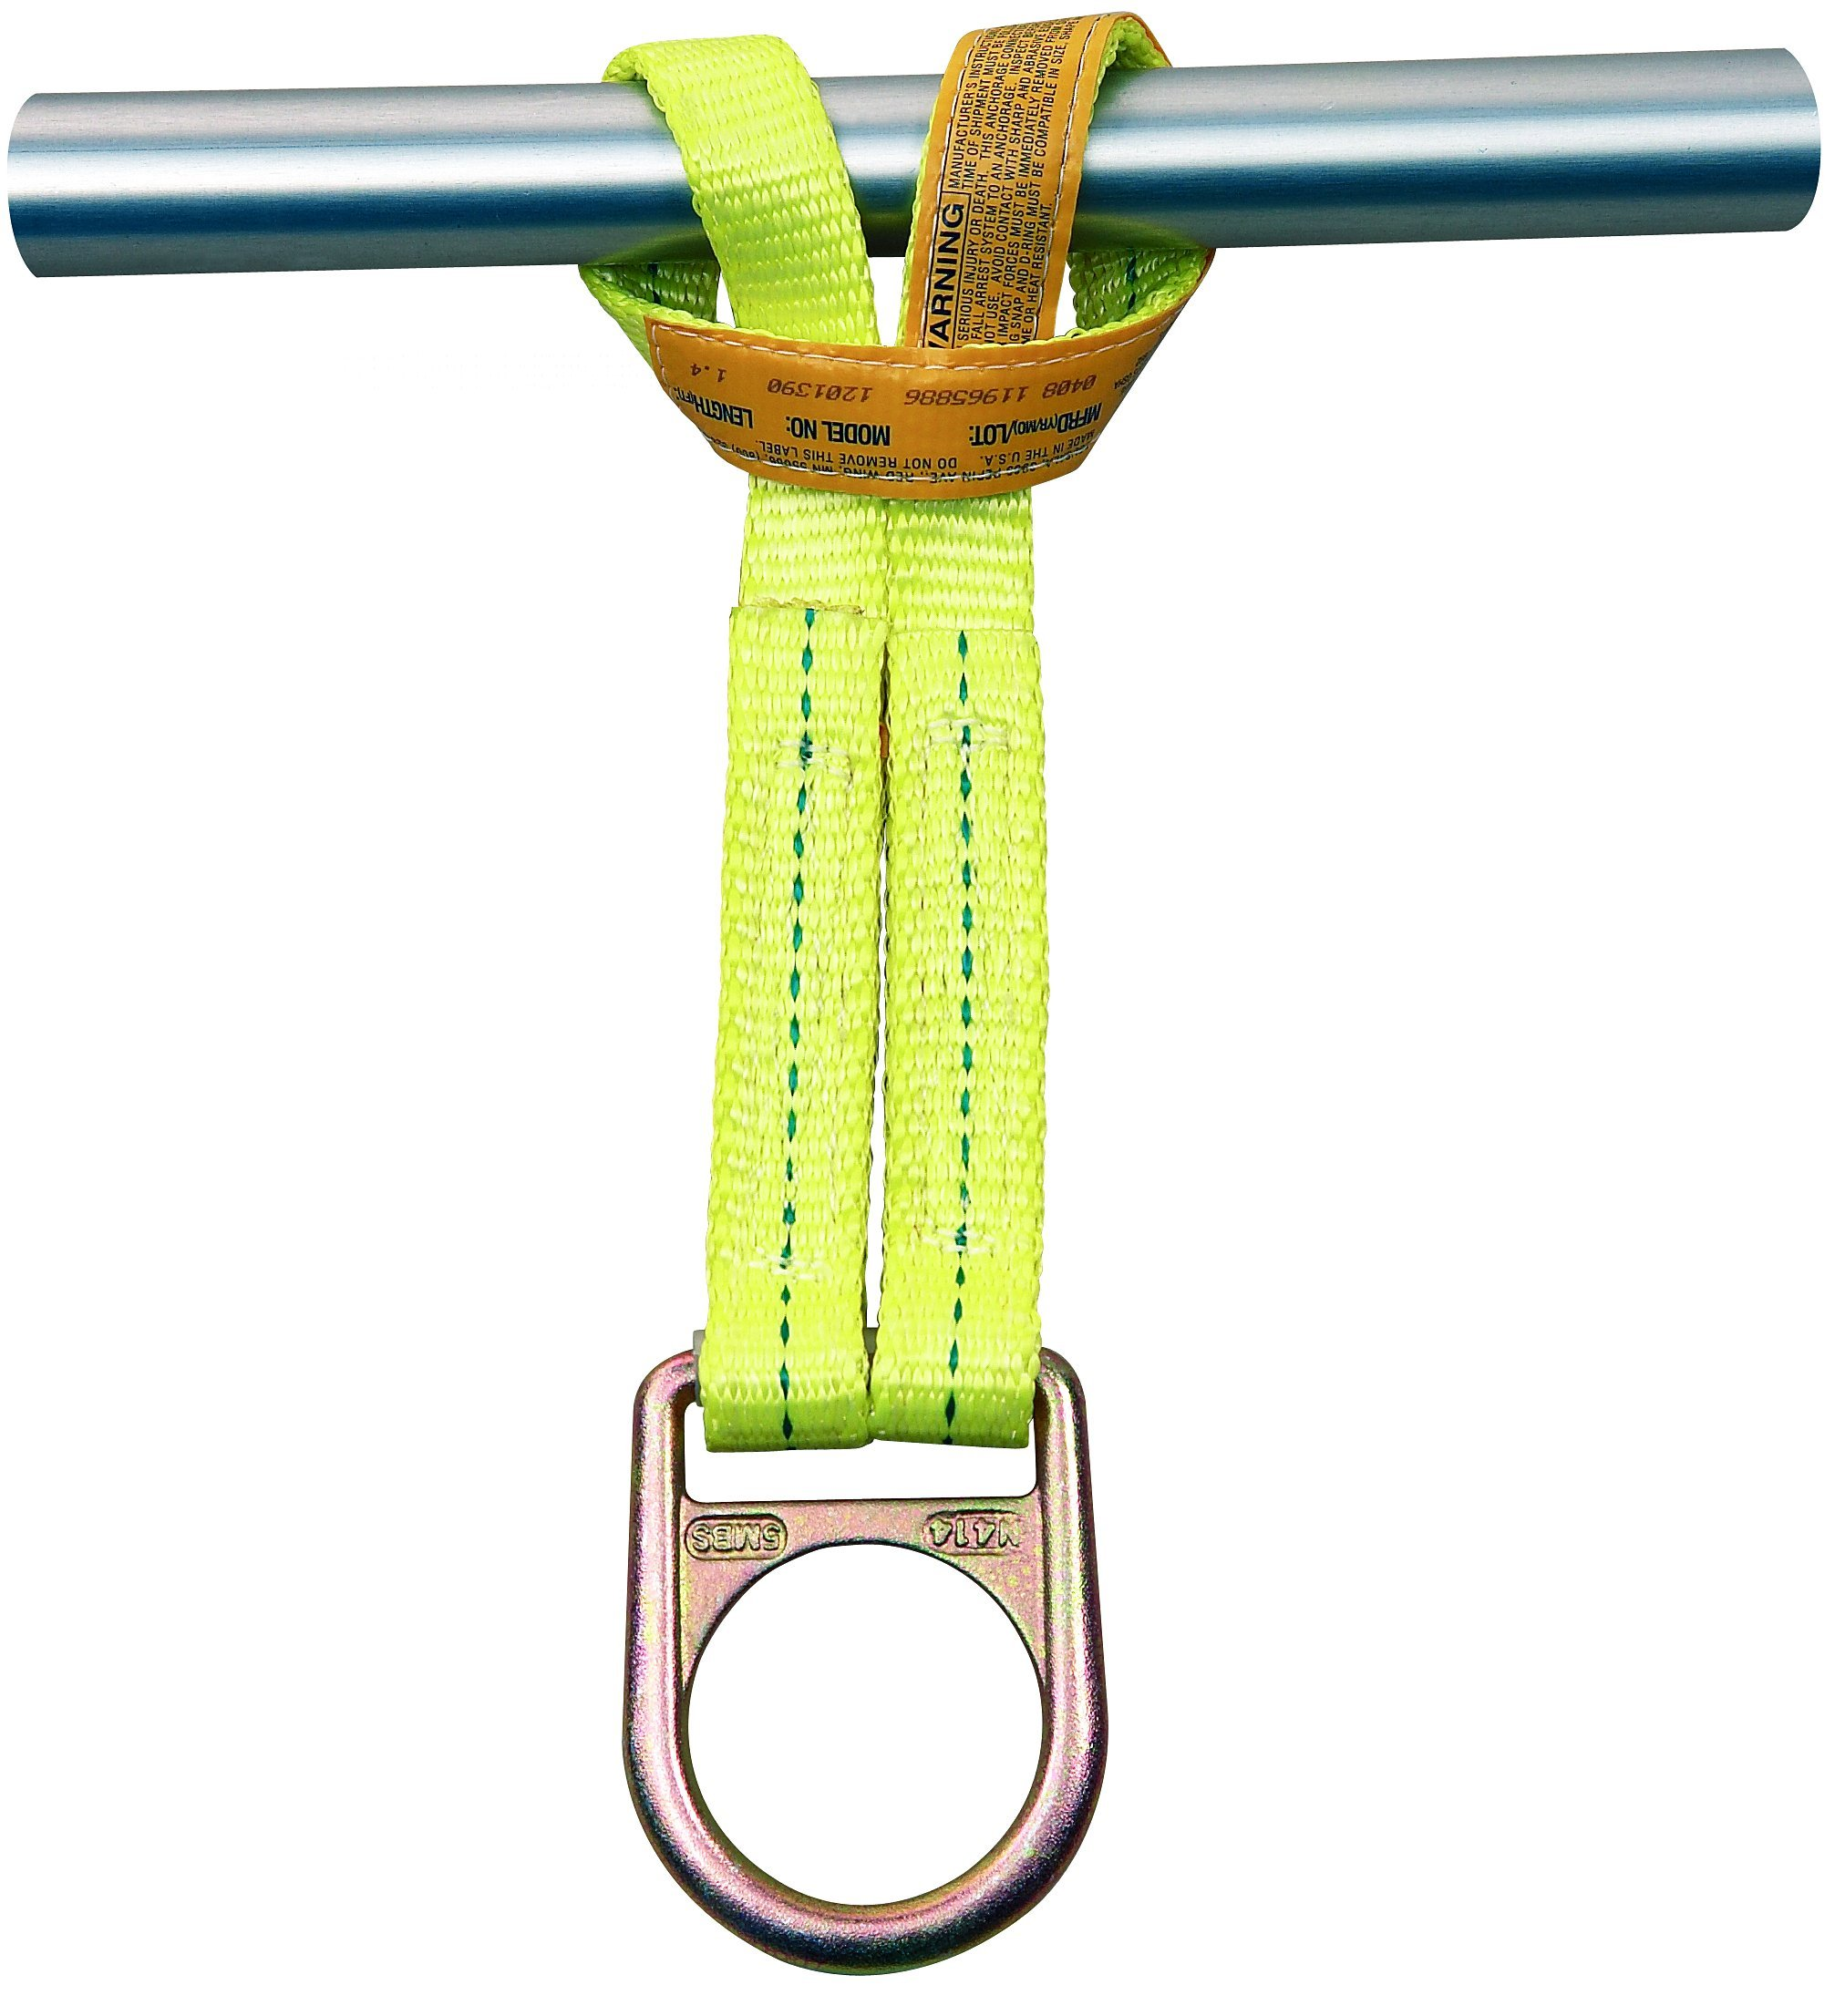 3M DBI-SALA 1201390 Web Scaffold Choker w/D-Ring, Yellow